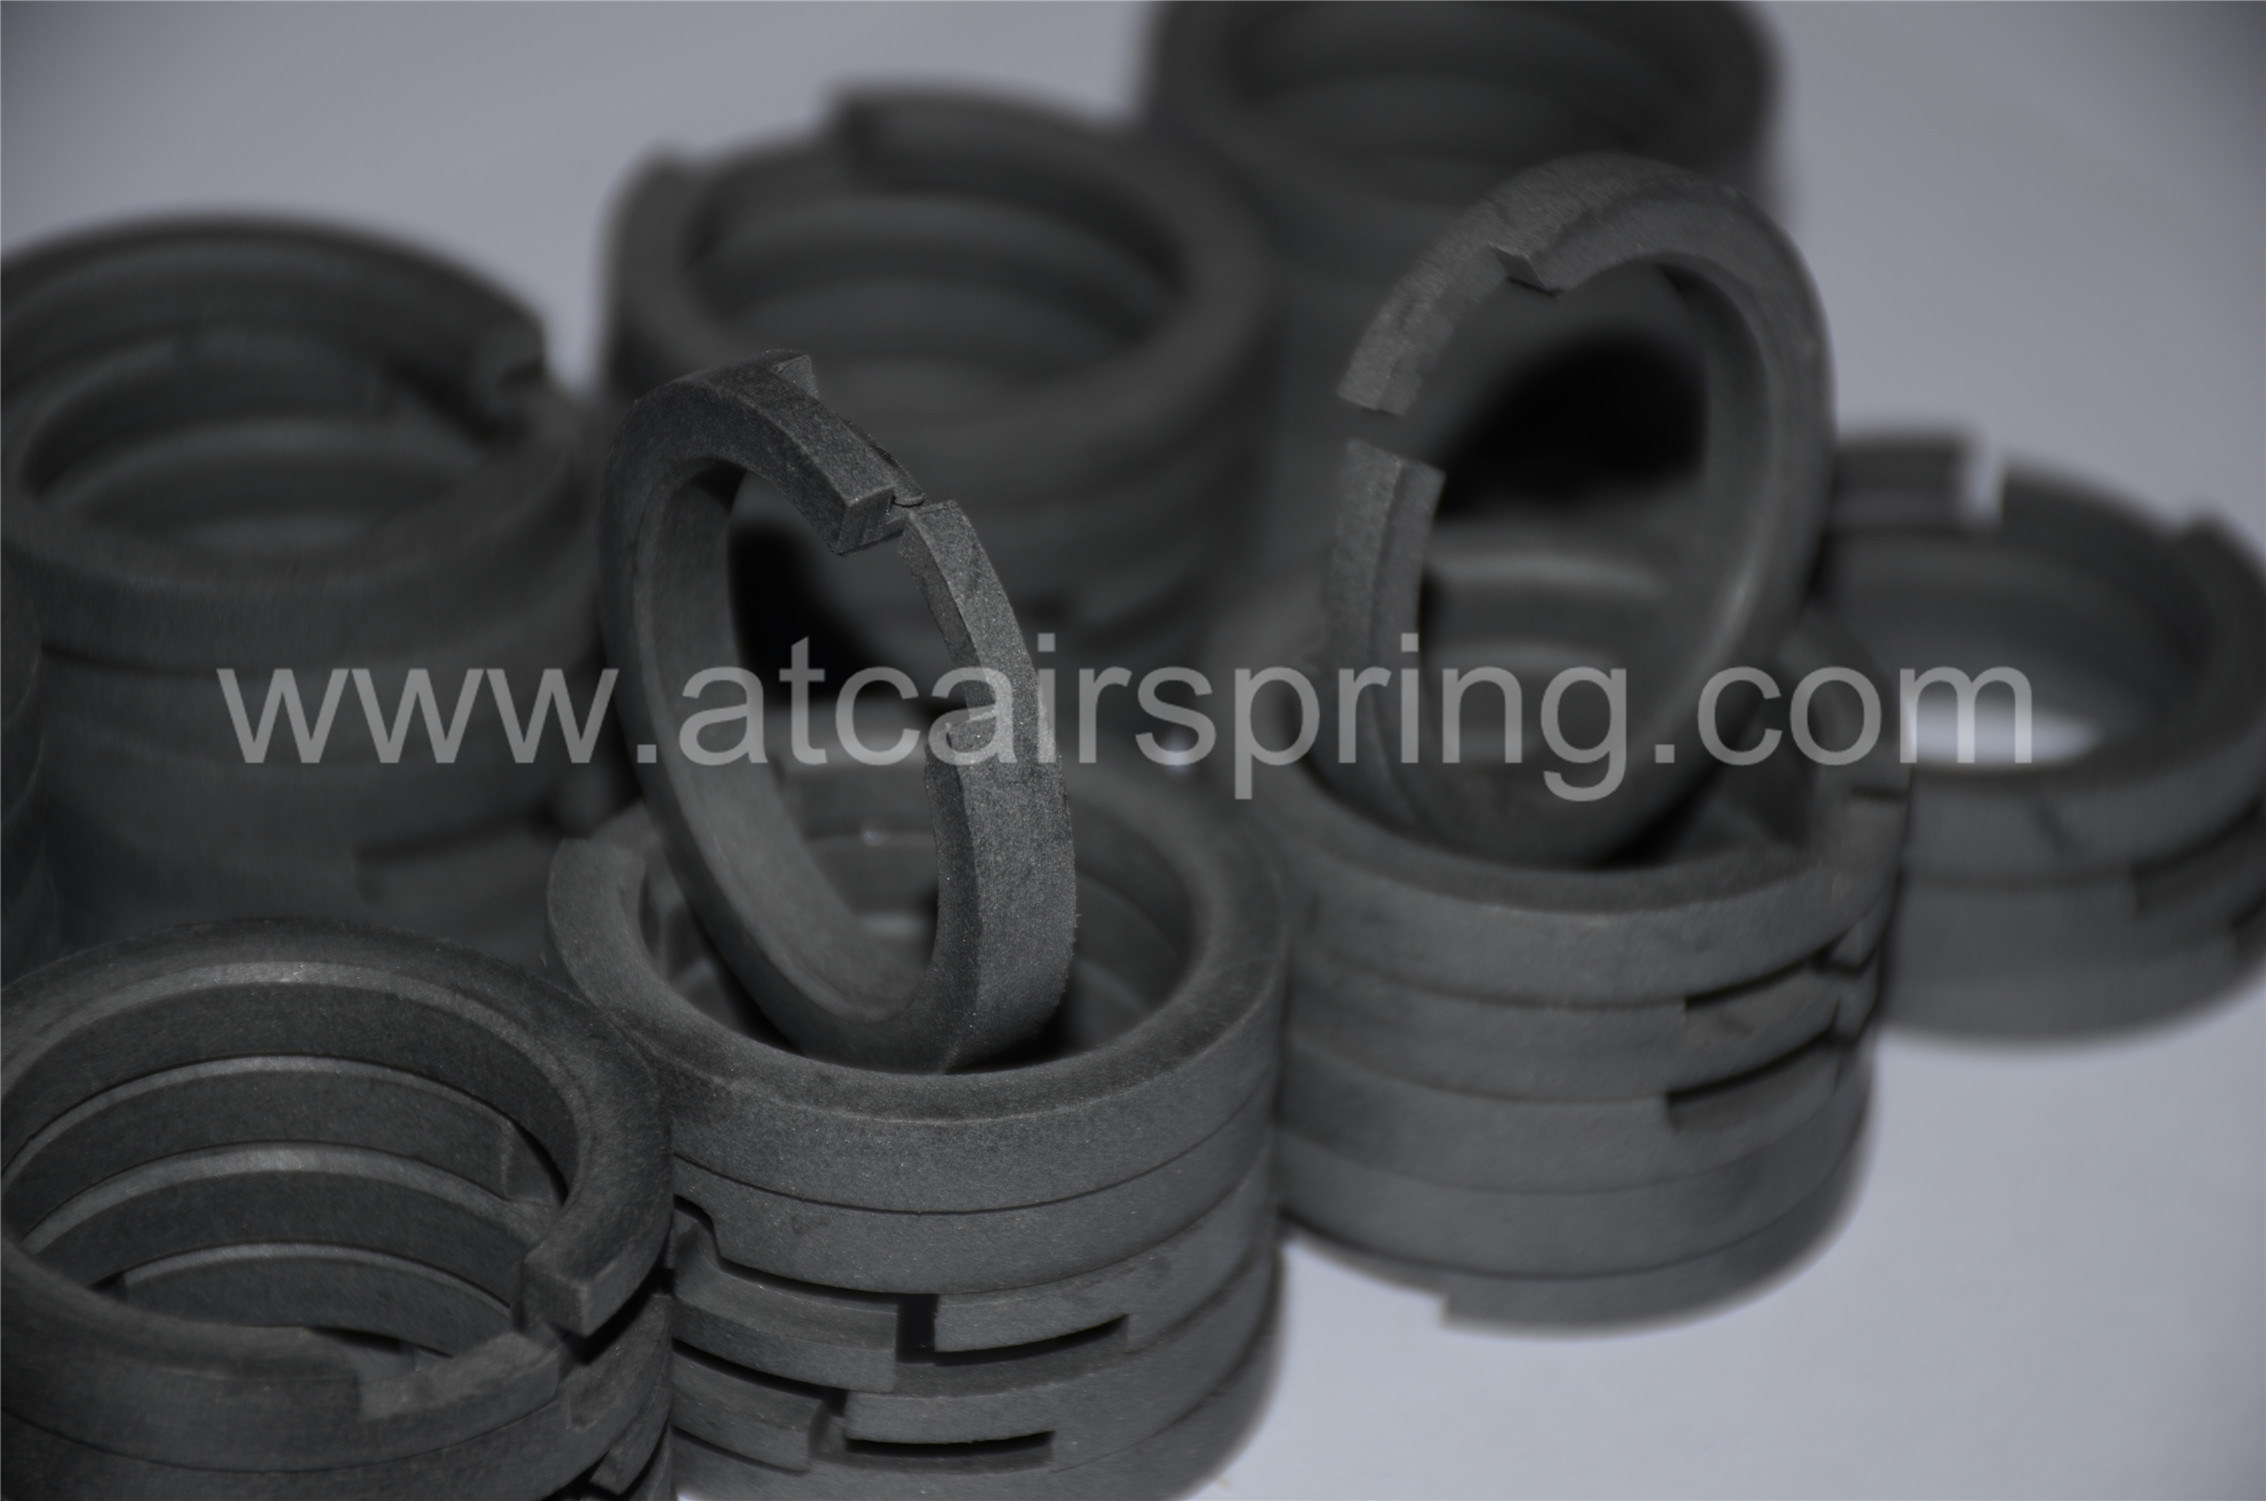 W220 W211 A8 F07 E66 E53 Air Compressor Piston Ring